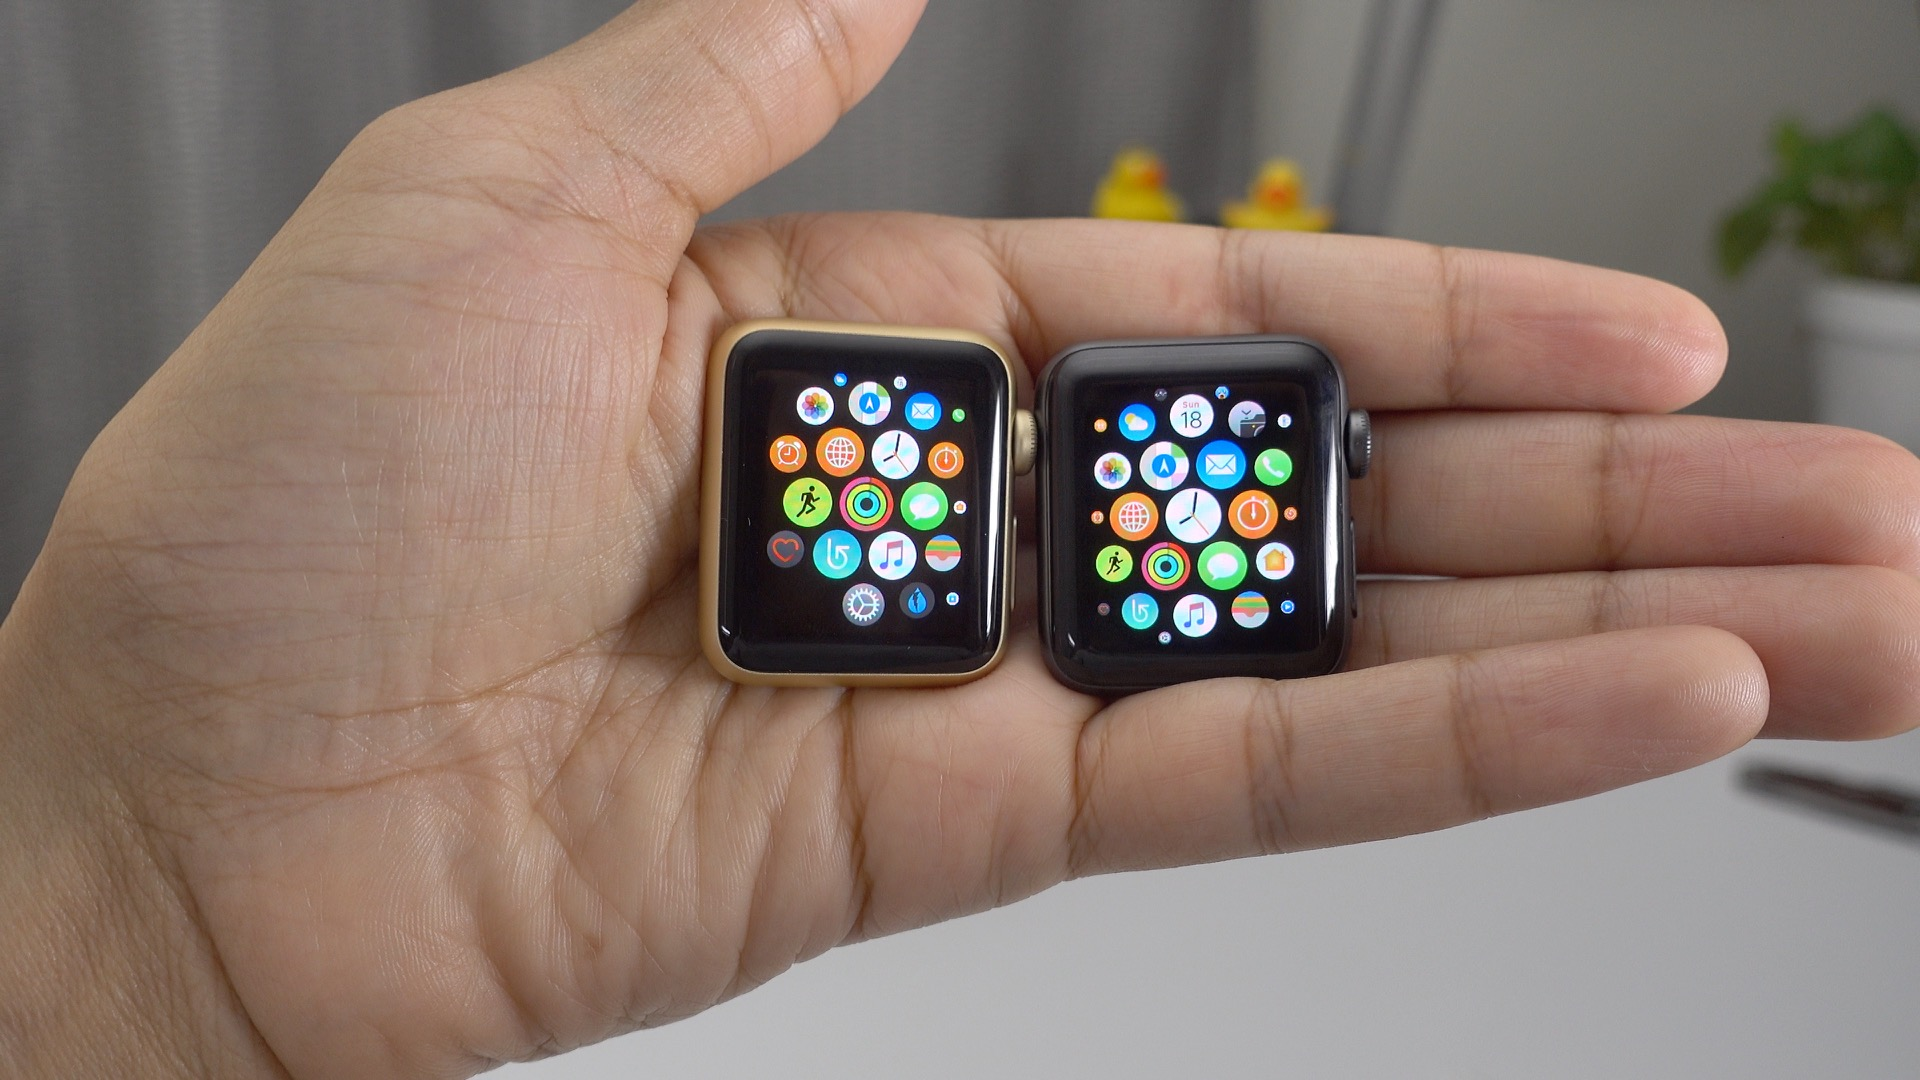 apple-watch-series-1-vs-series-2-brightness